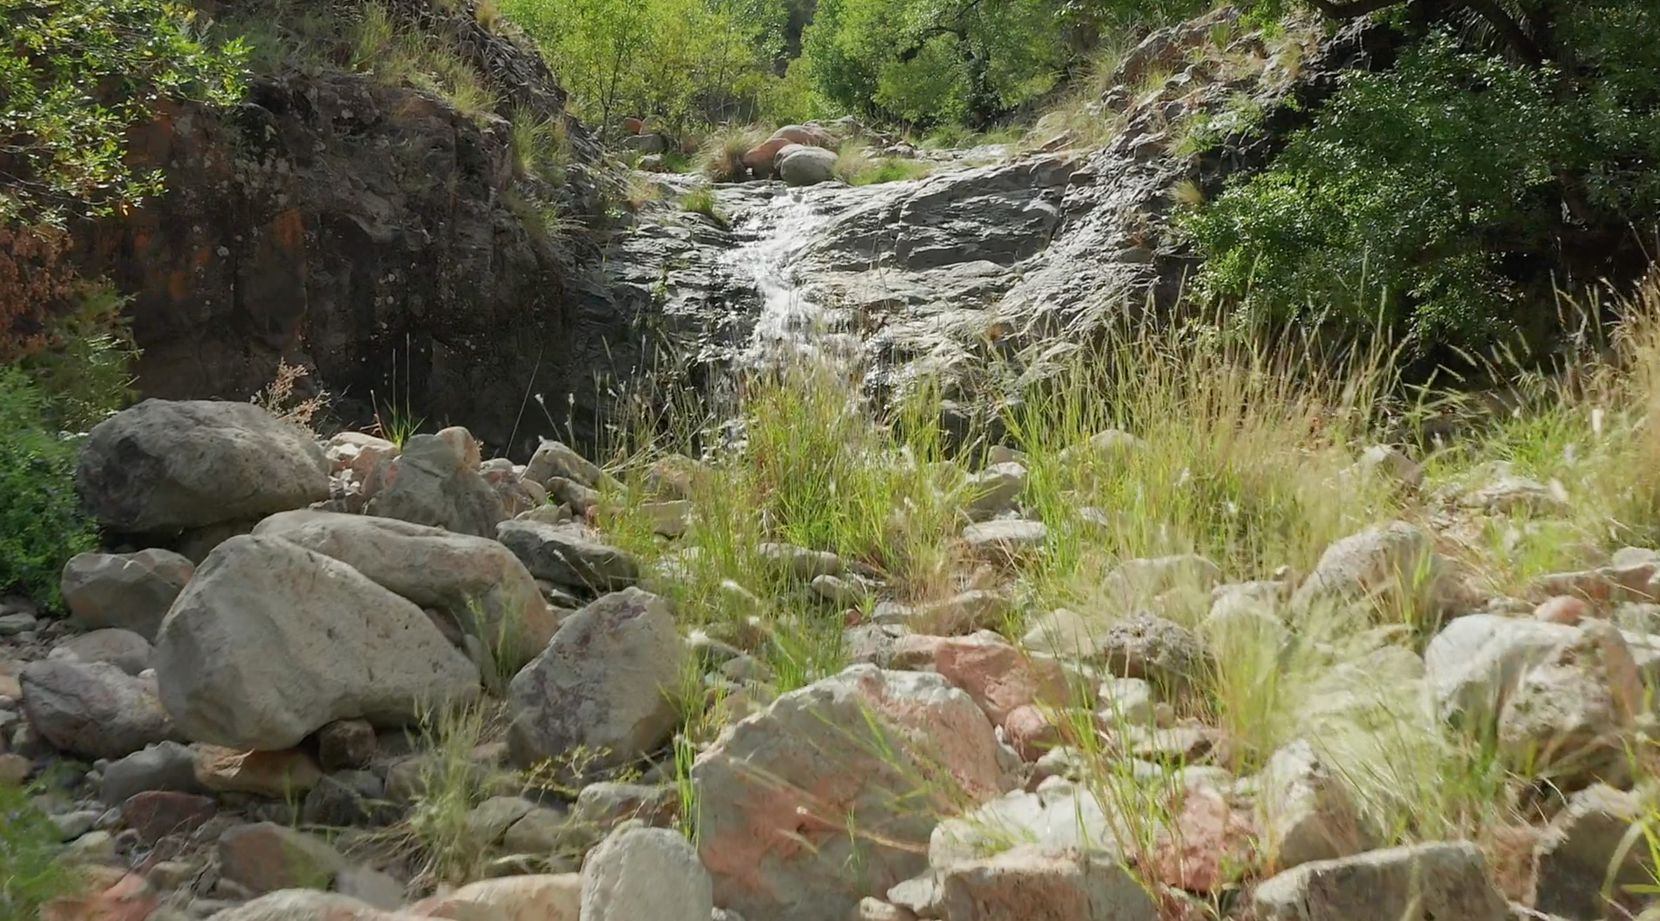 The mountain ranch has streams and springs.